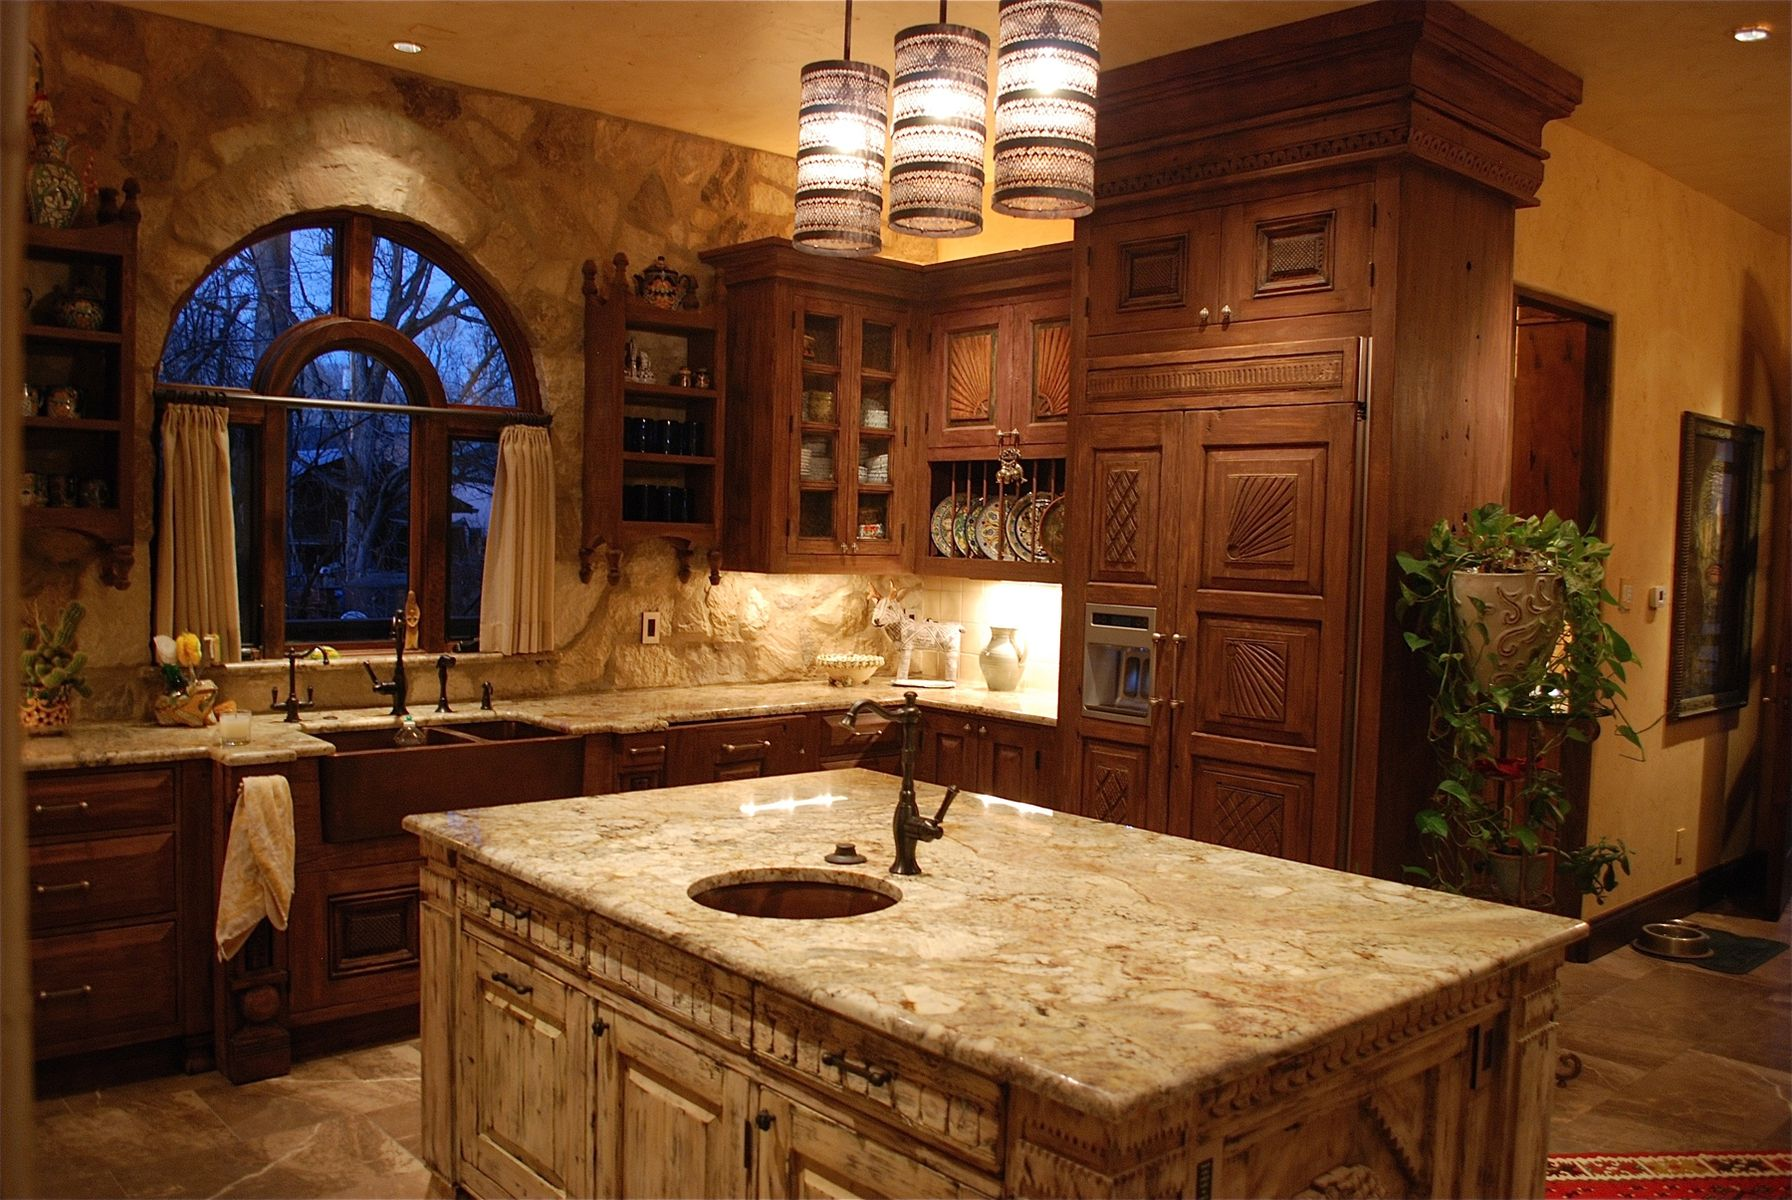 Custom Made Kitchen Cabinets hand made custom painted kitchen cabinetstilde design studio